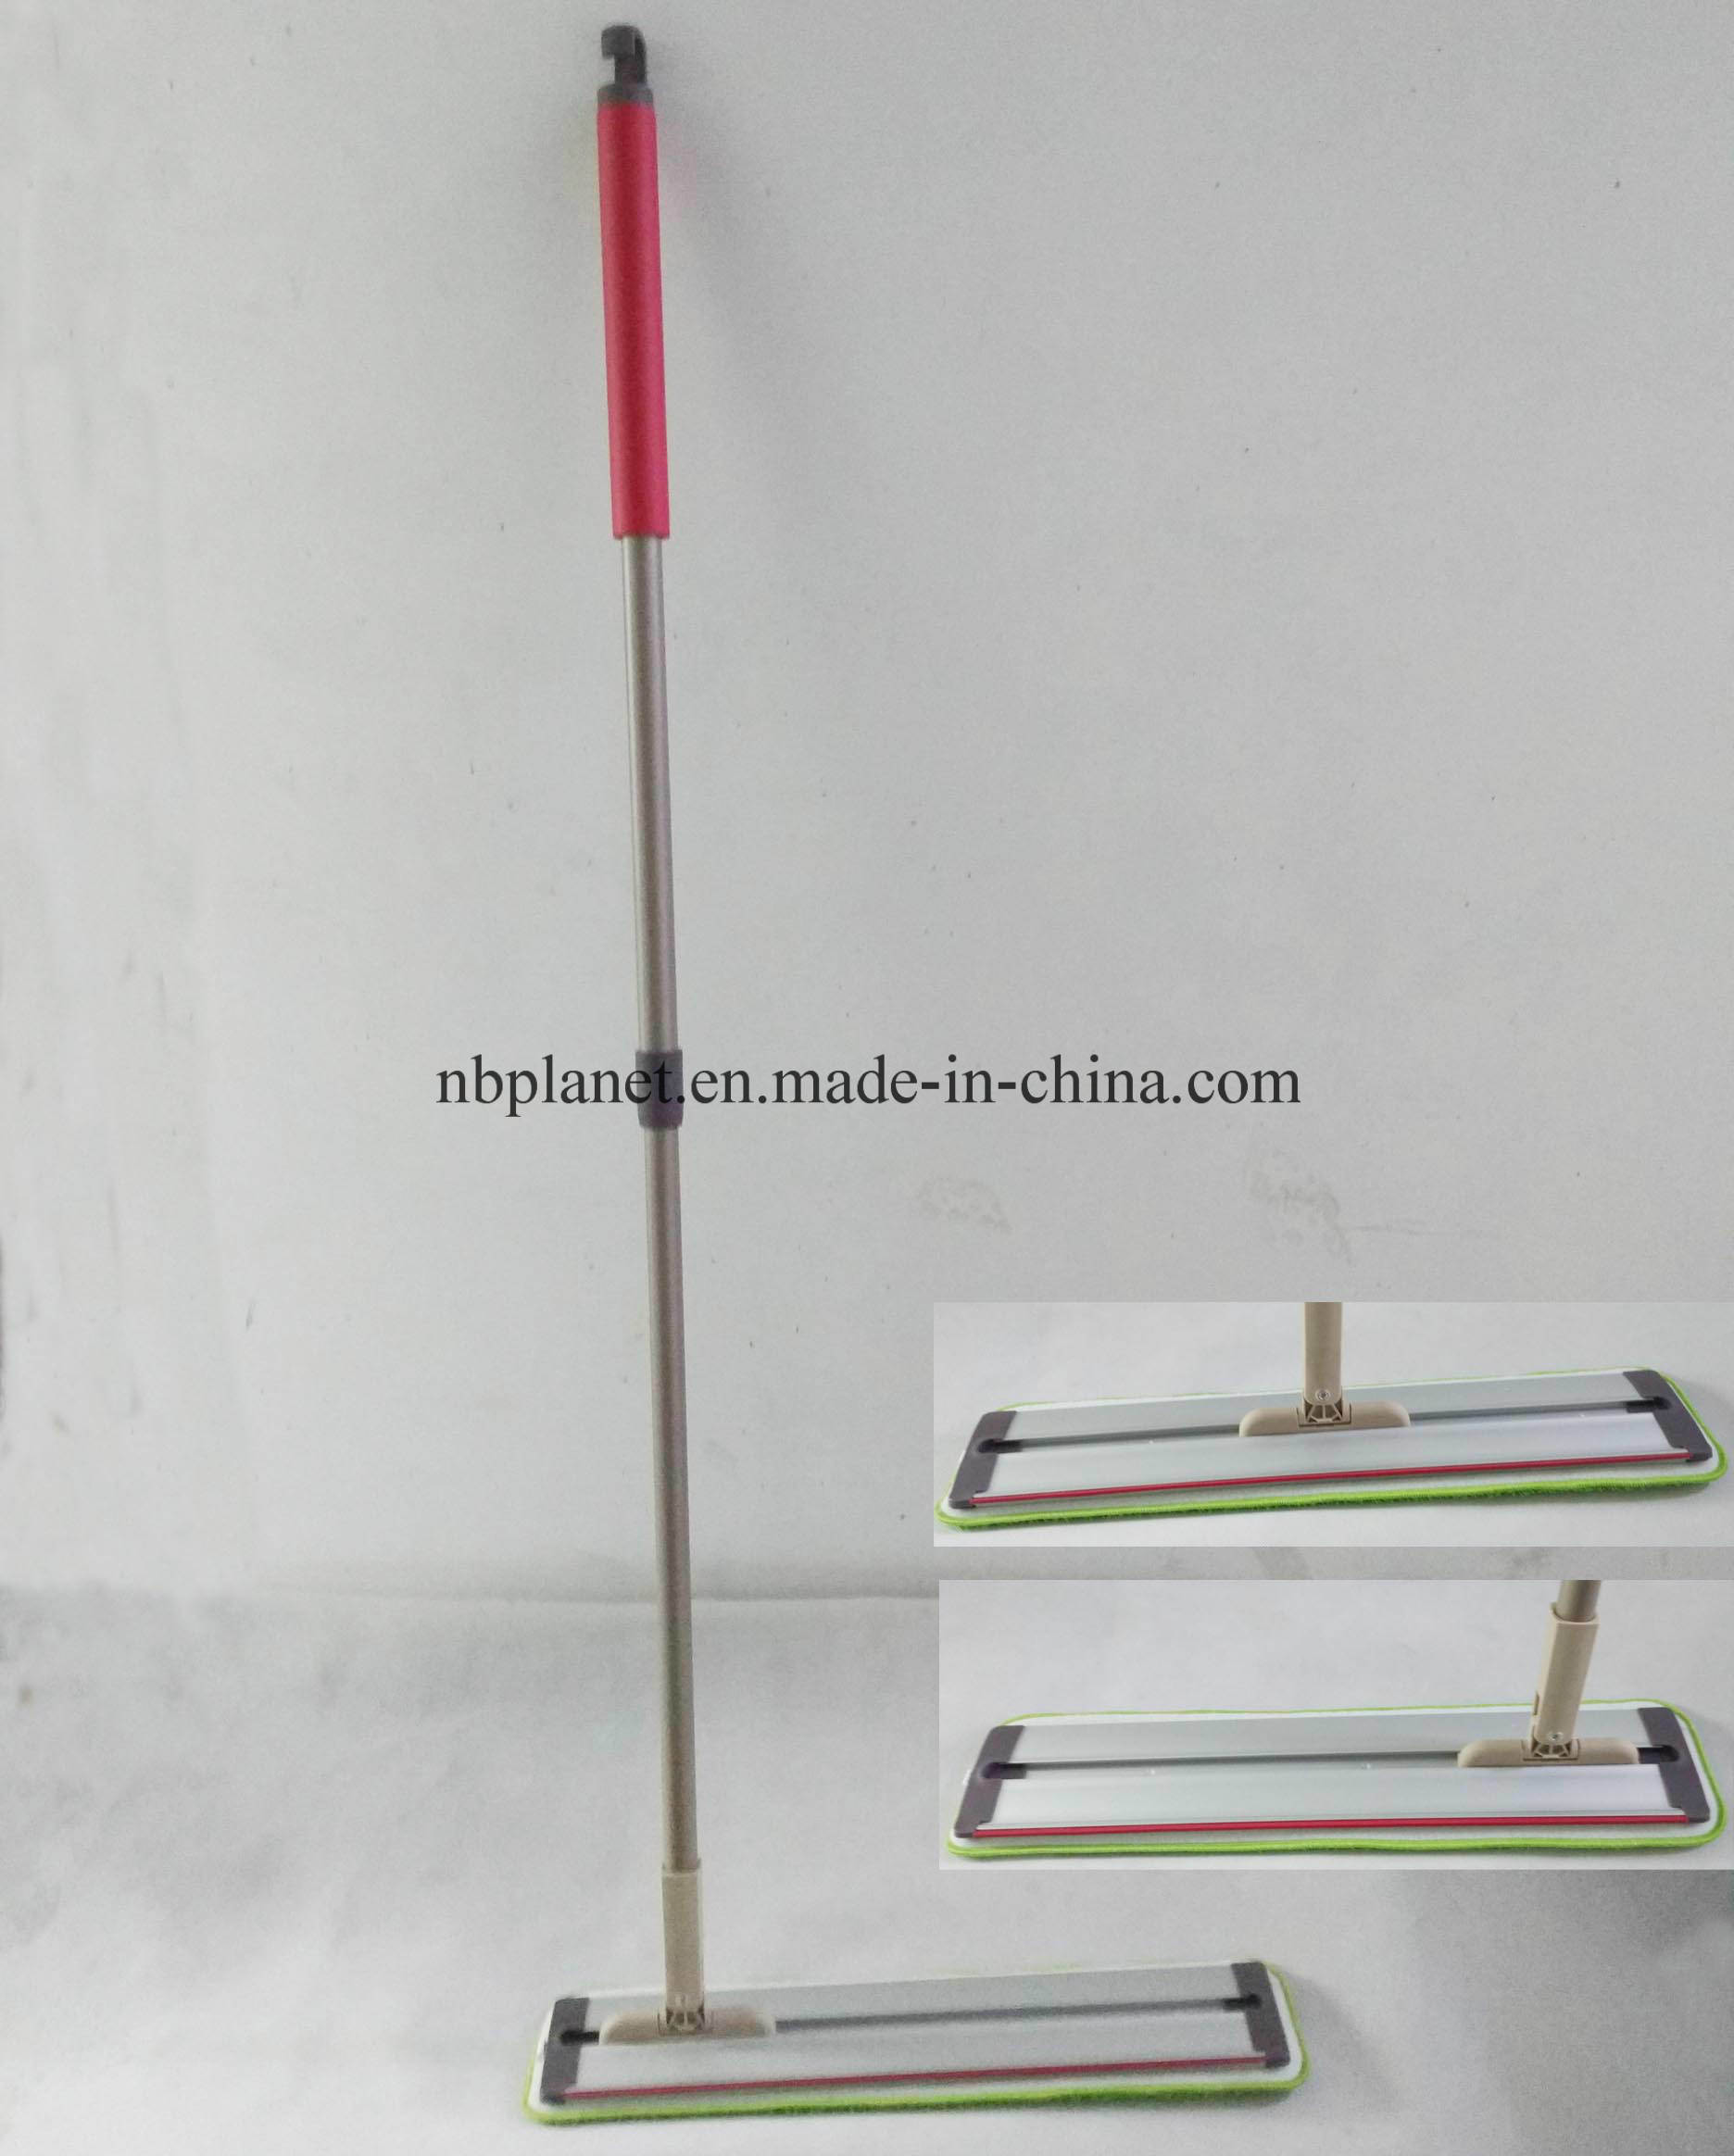 Aluminum Board Flat Microfiber Mop with Movable Handle - New Design